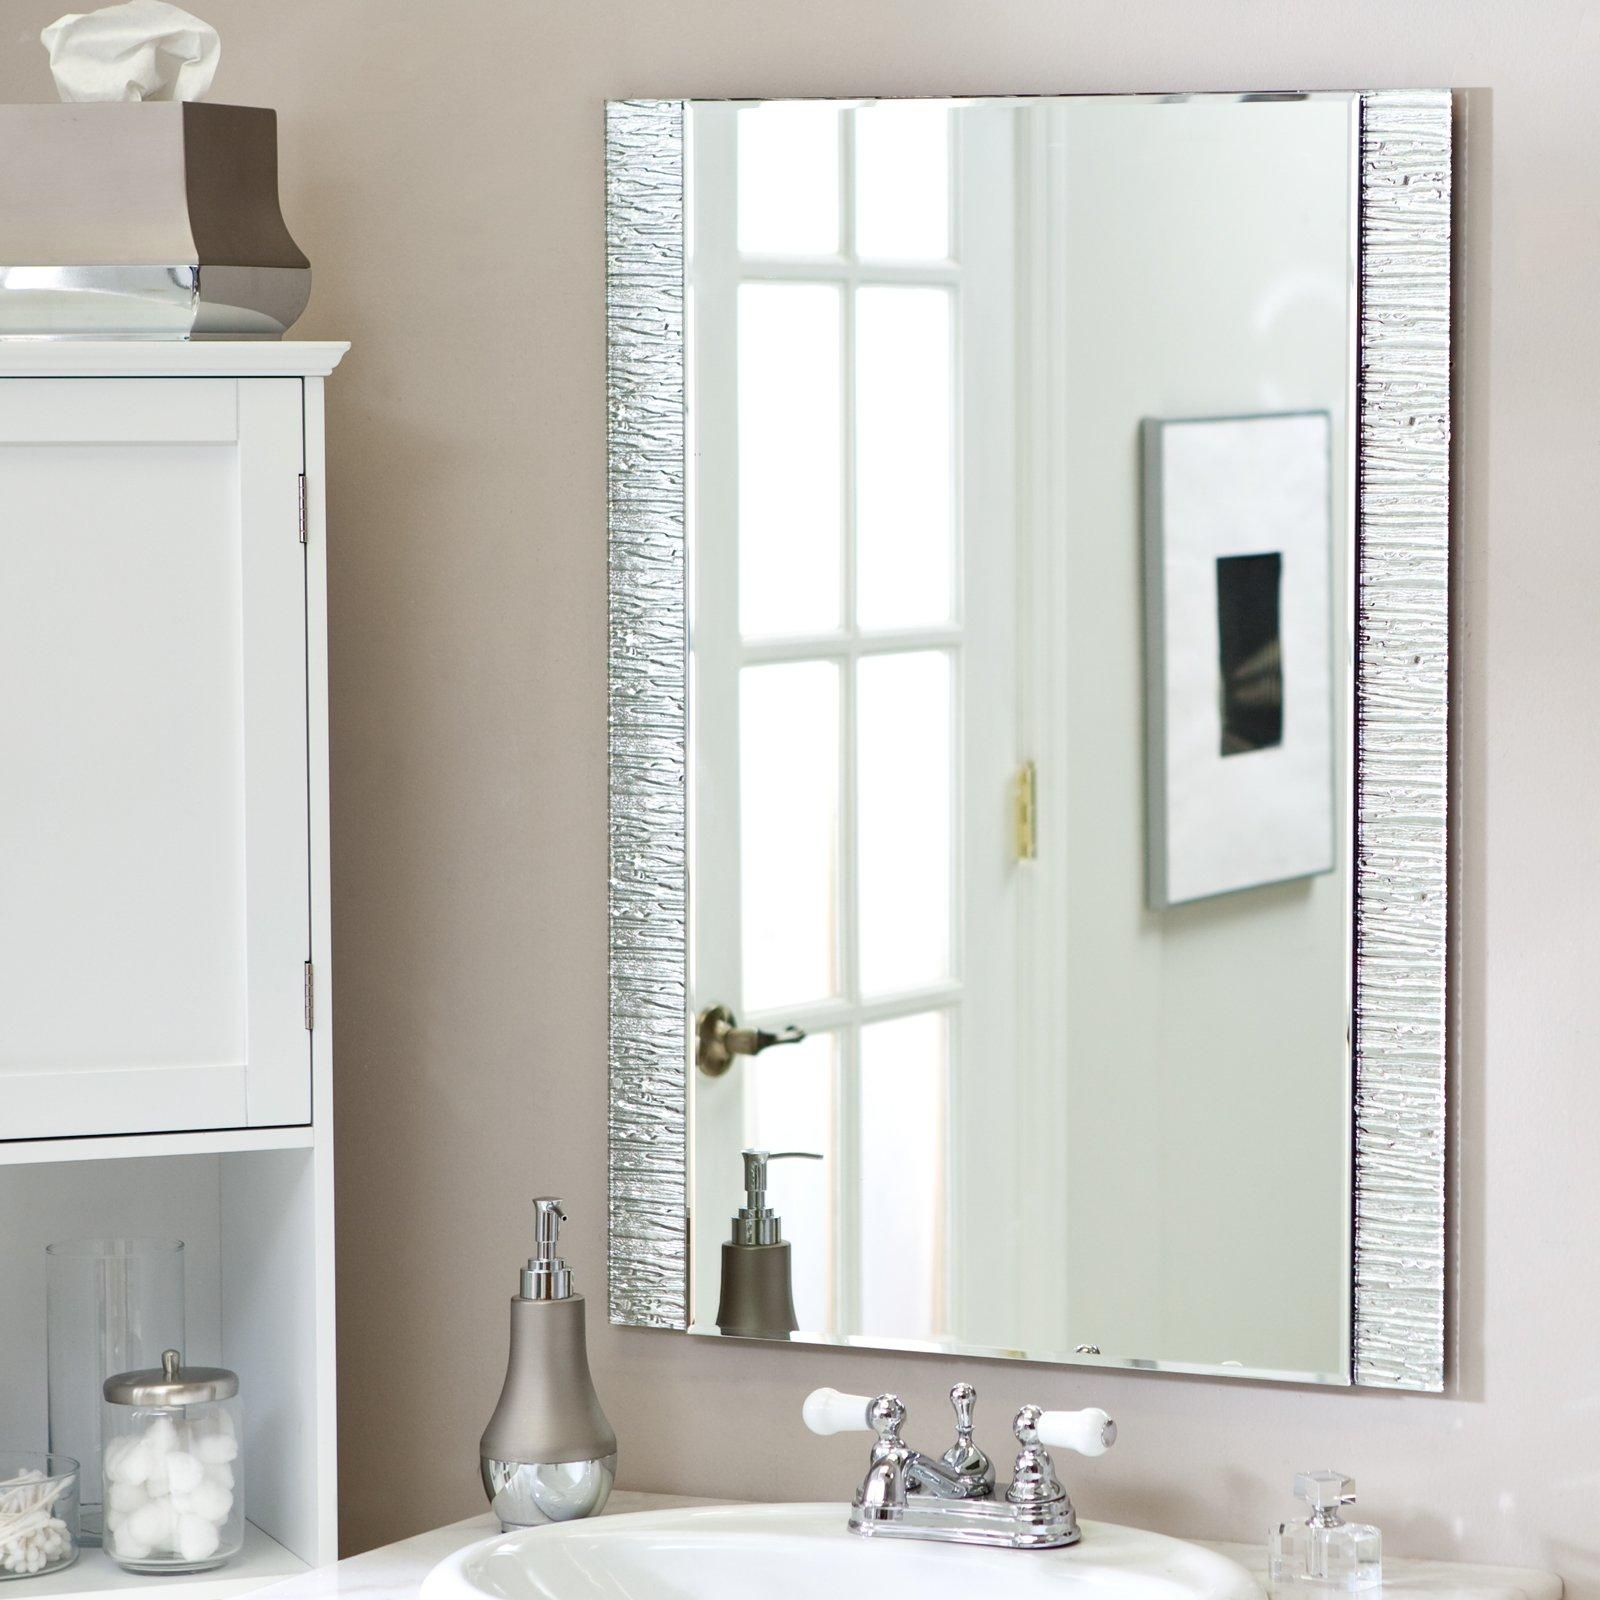 Bathroom : Beautiful Bathroom Vanity Mirrors Decorative Mirrors With Regard To Decorative Mirrors For Bathroom Vanity (View 19 of 20)